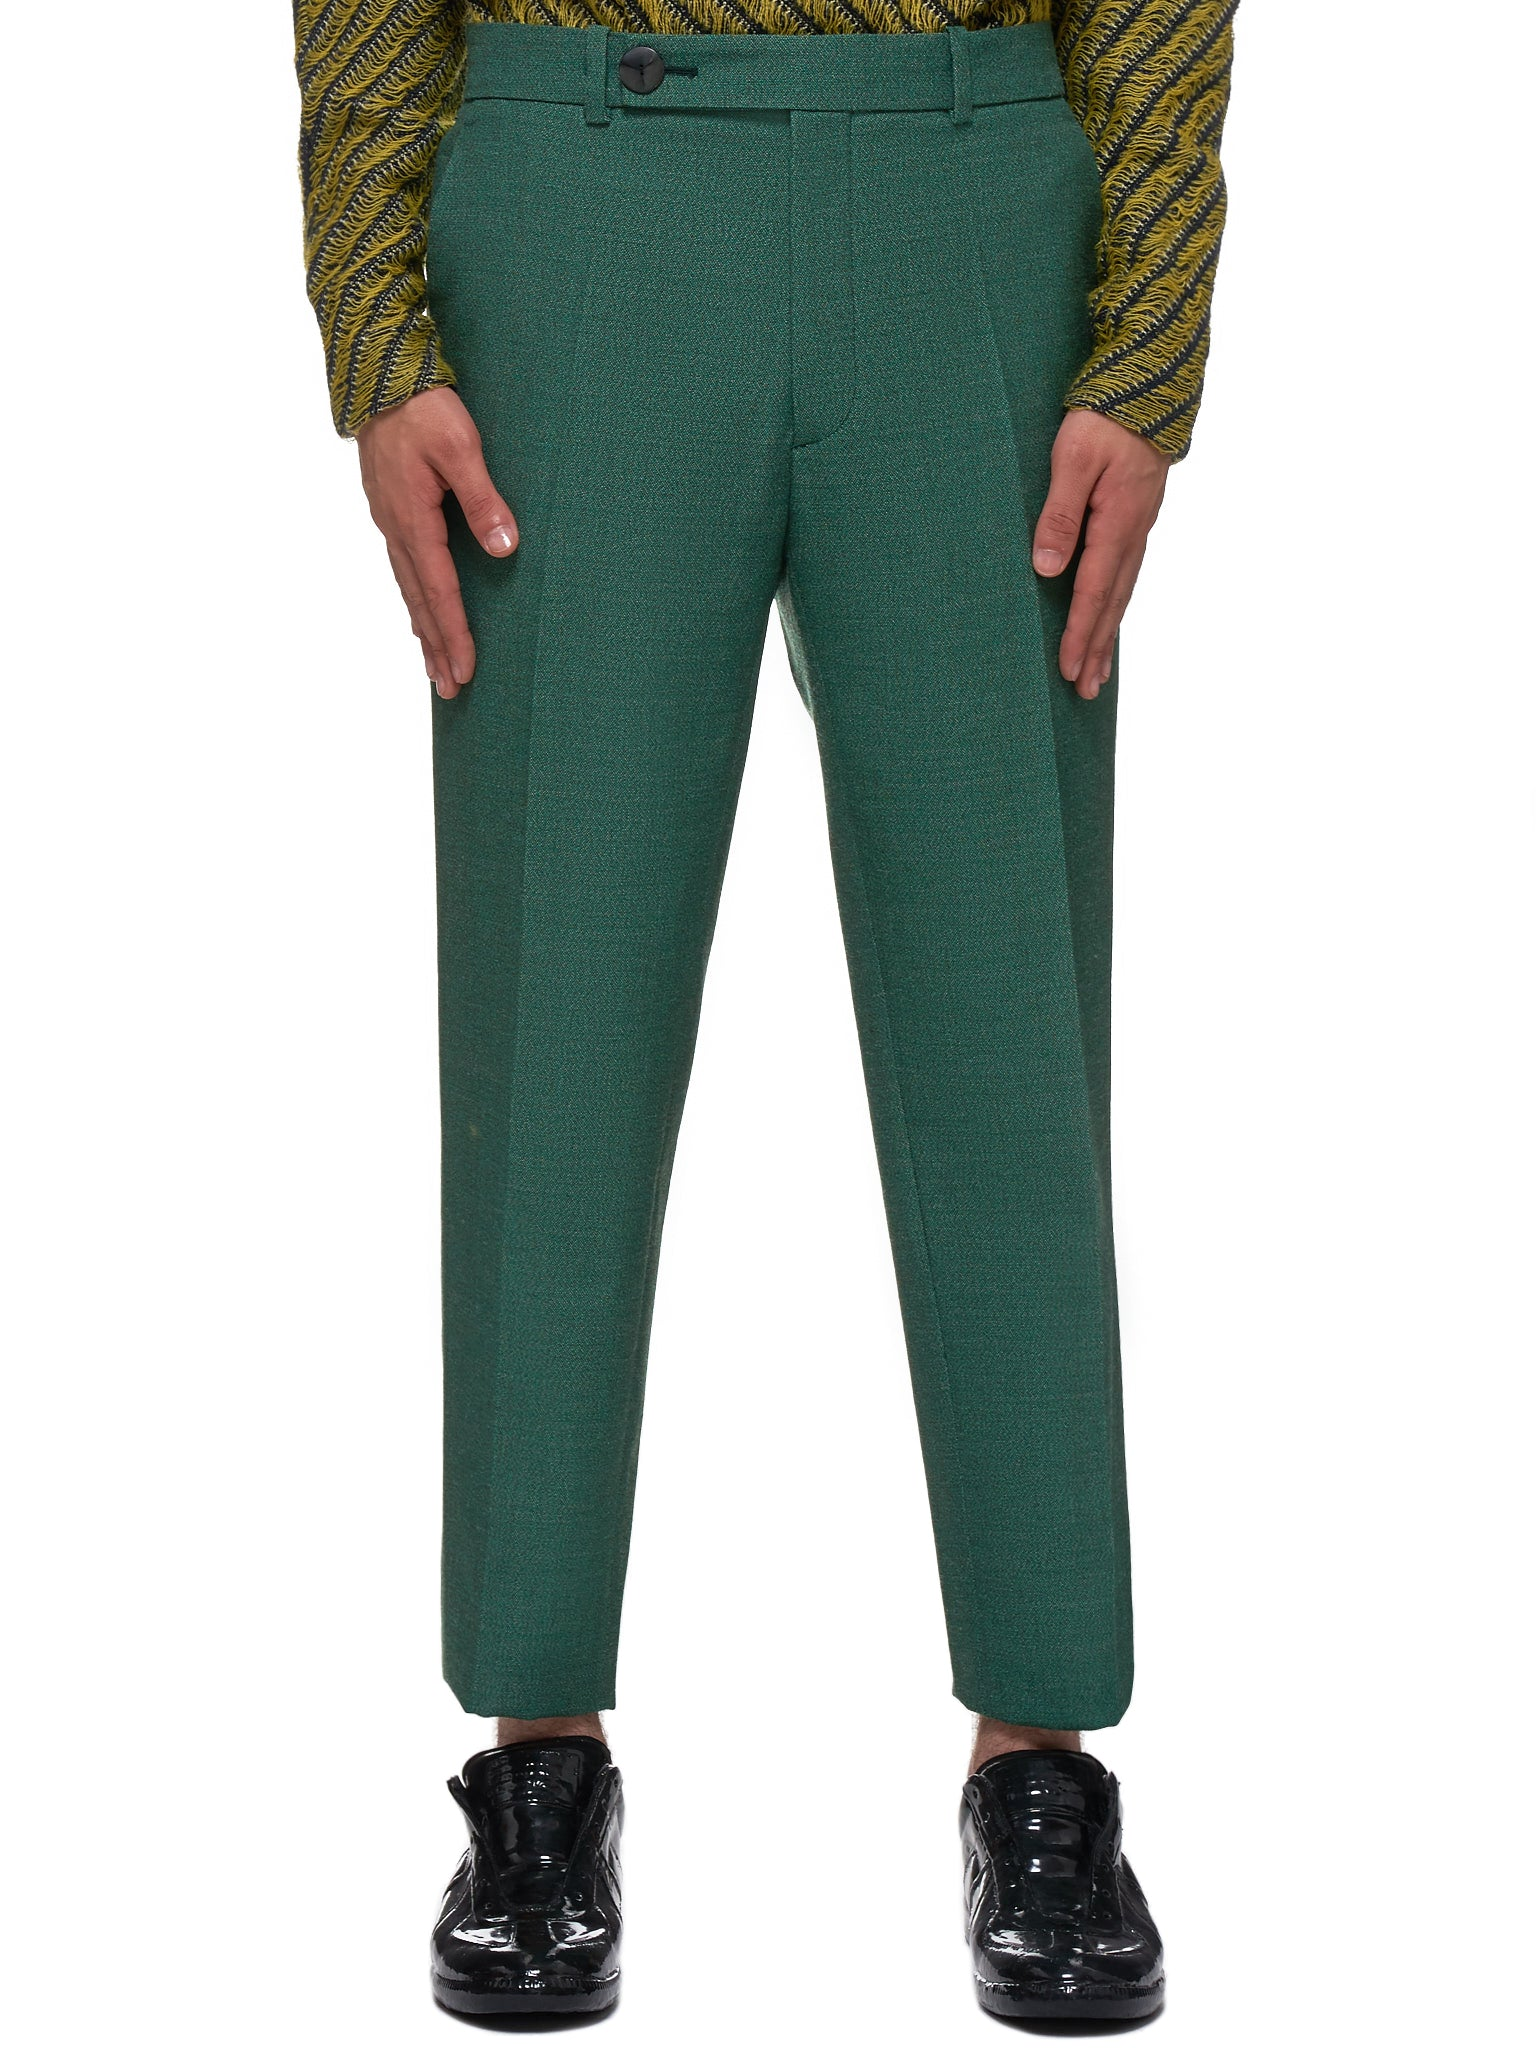 Shill Trousers (0501-N2501-GREEN)